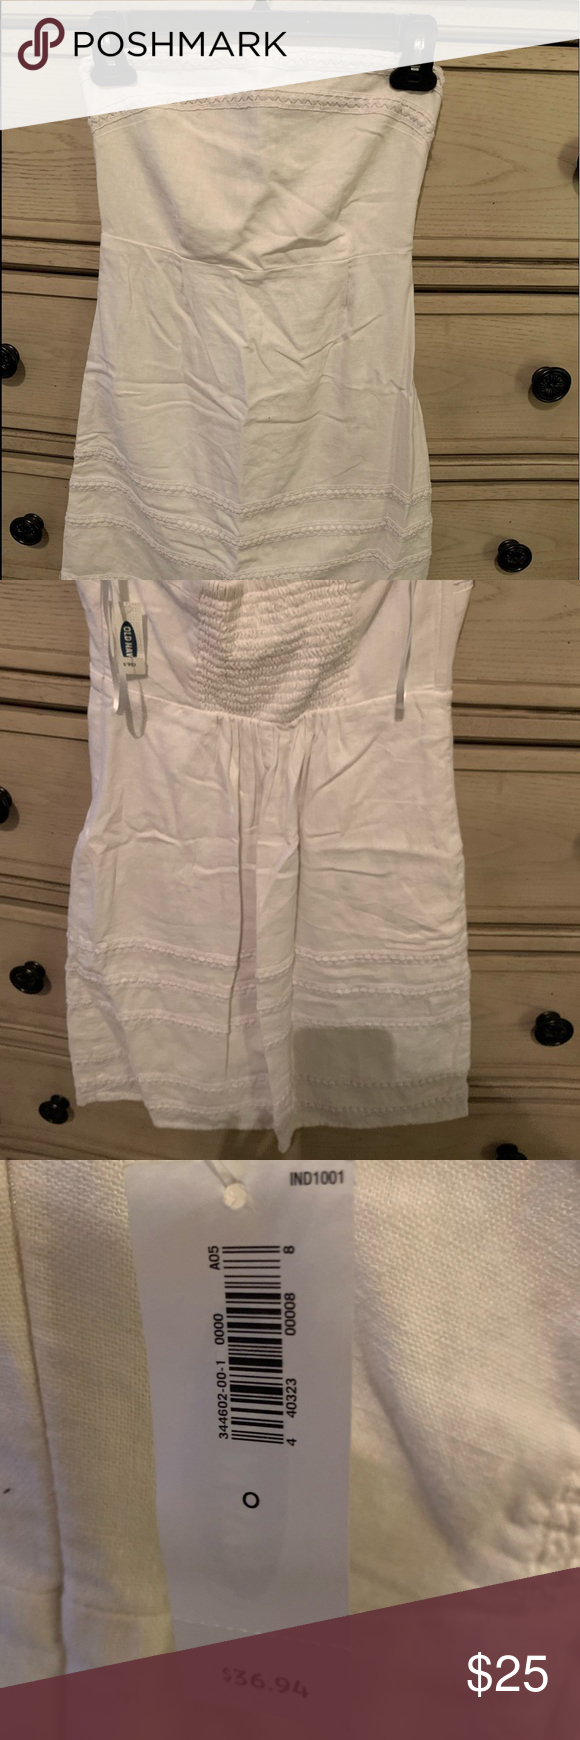 White Dress Perfect for a Honeymoon or any beach vacation! Strapless white dress with beautiful detail. New with tags - never worn! Dresses Midi #beachhoneymoonclothes